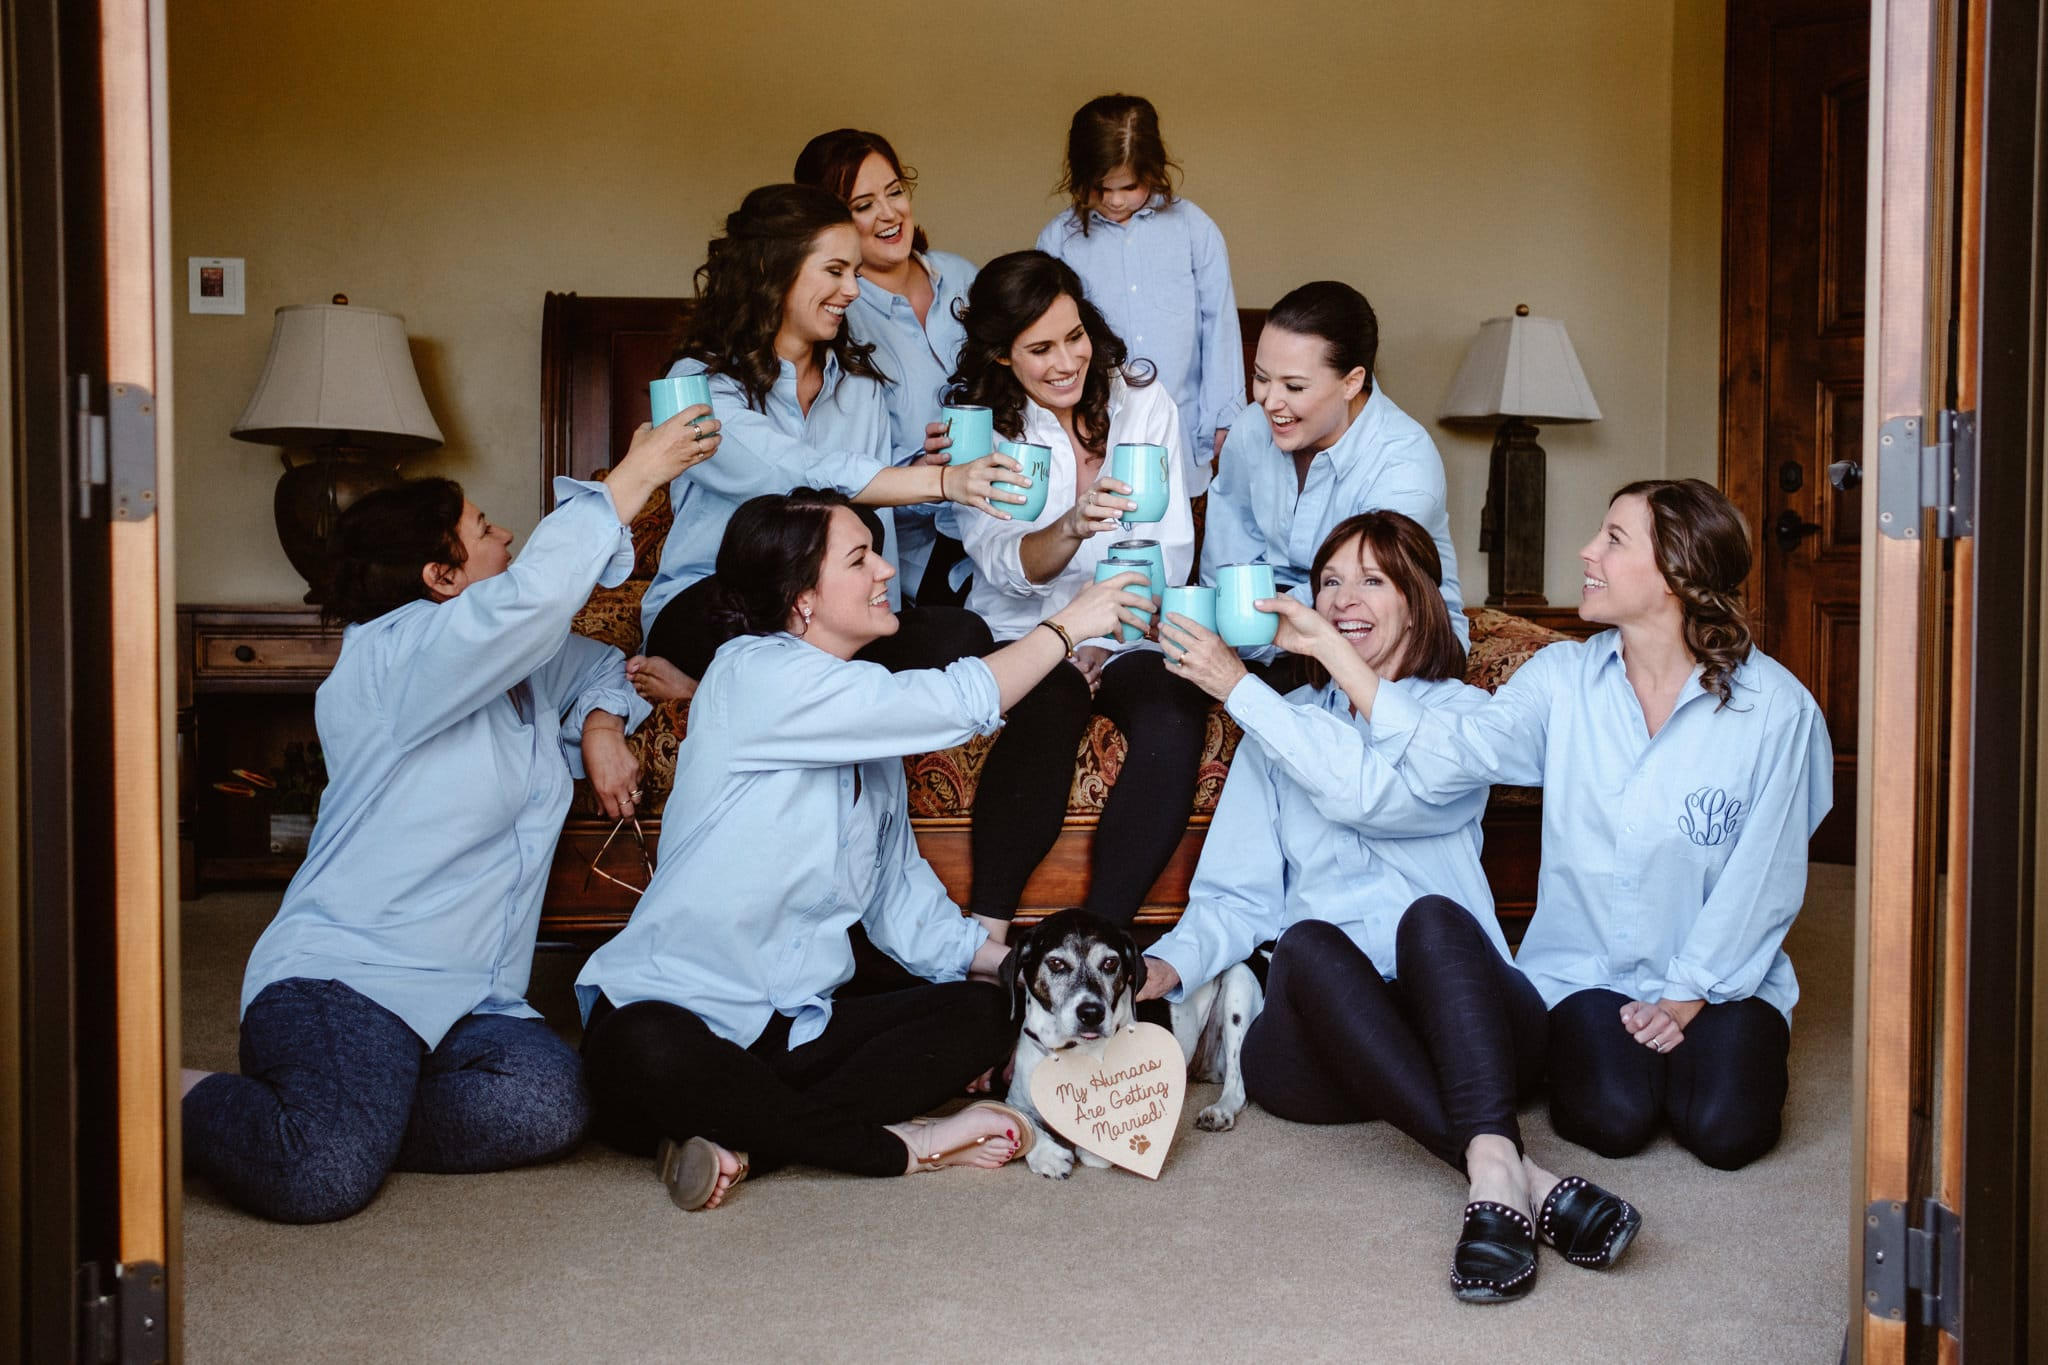 Bride and bridesmaids in matching monogrammed shirts while getting ready